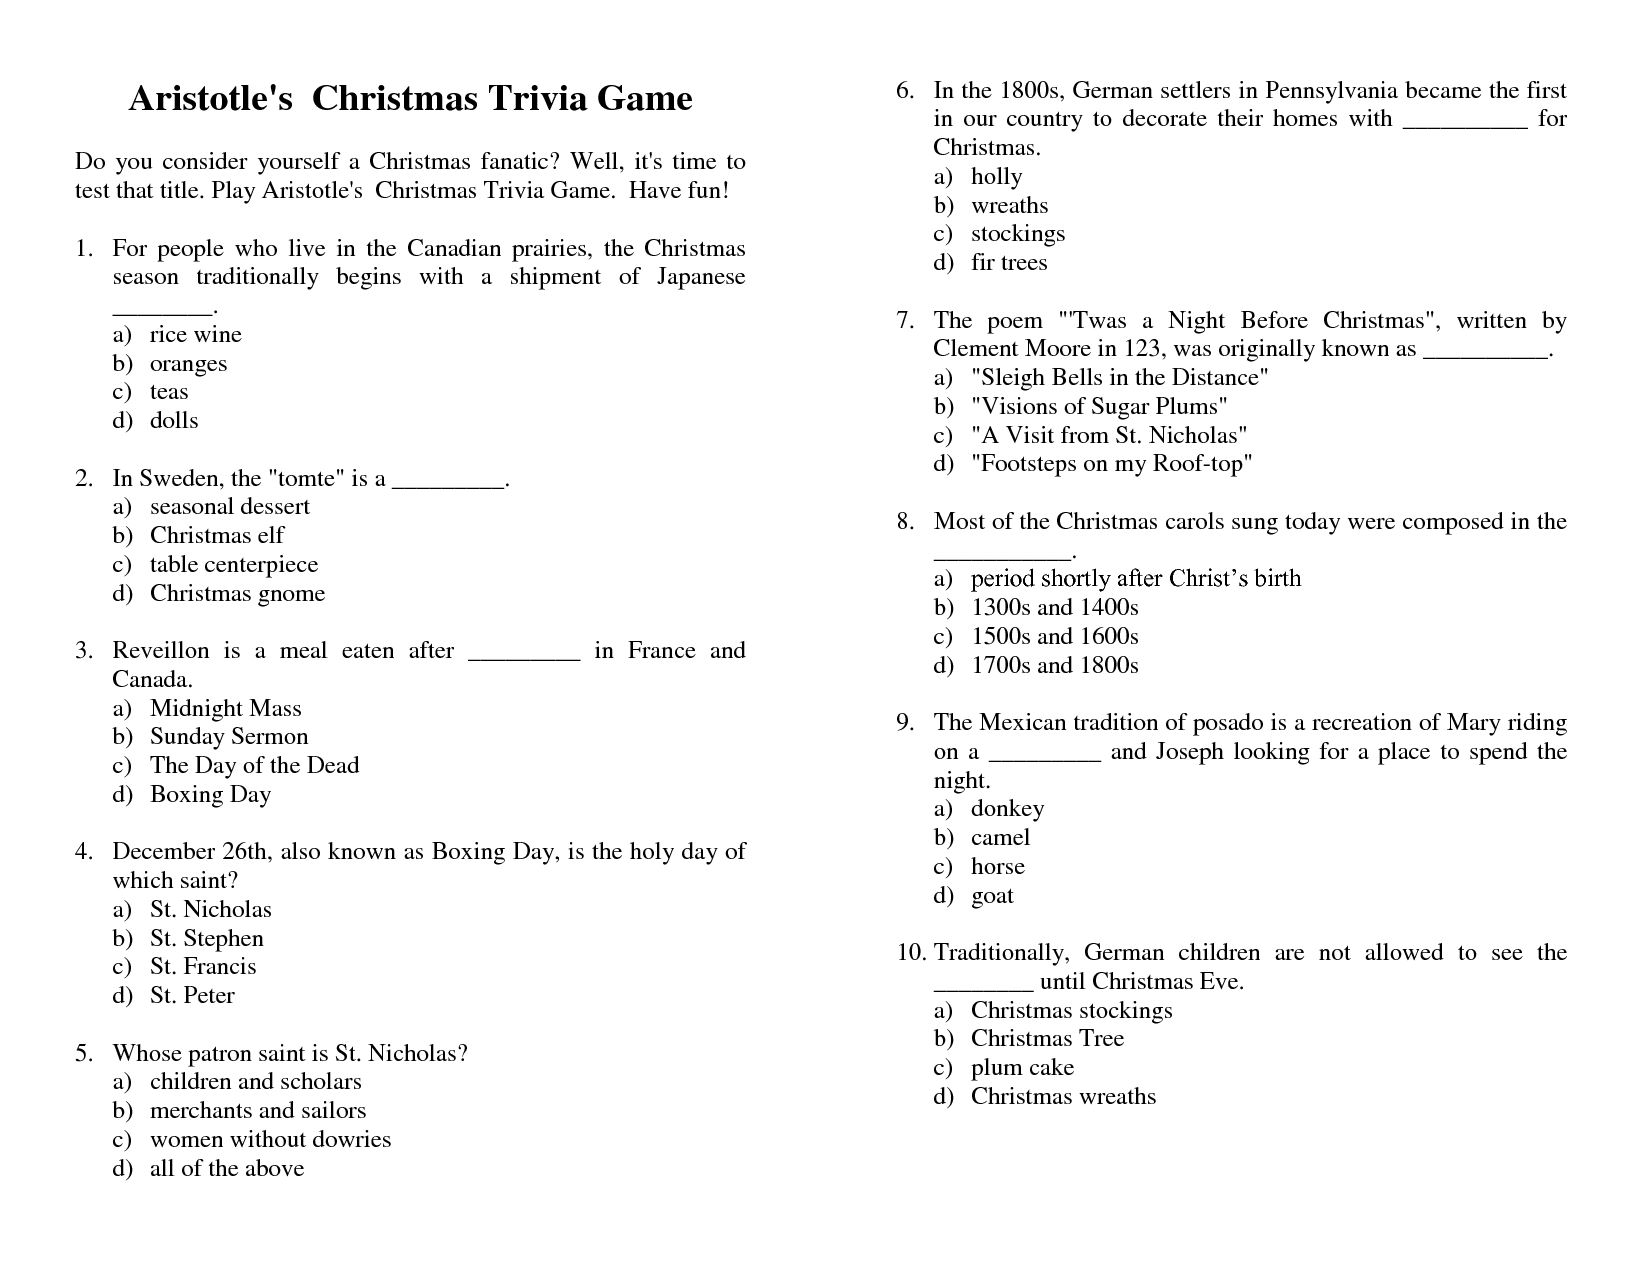 56 Interesting Christmas Trivia